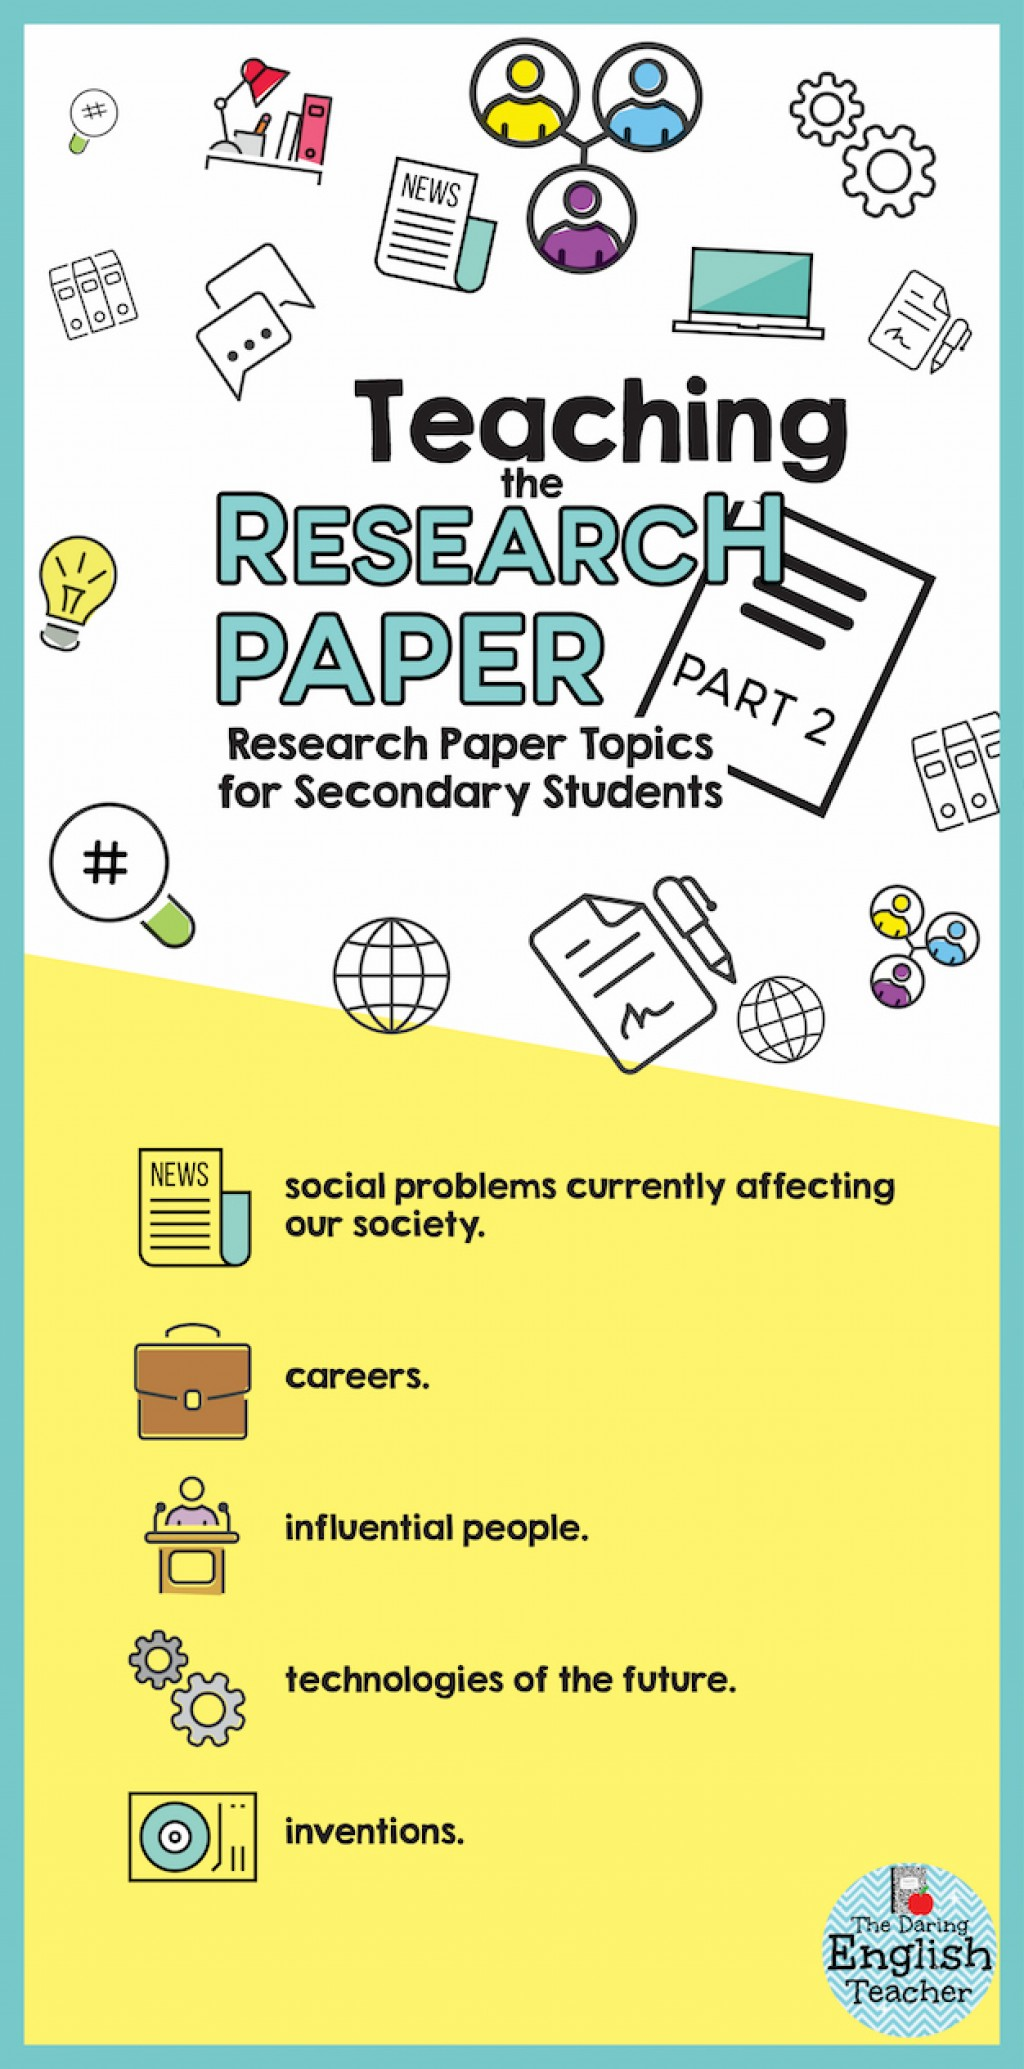 020 Infographic2bp22b2 Research Paper Topic For Unusual A About Business Topics 2018 In Psychology Large